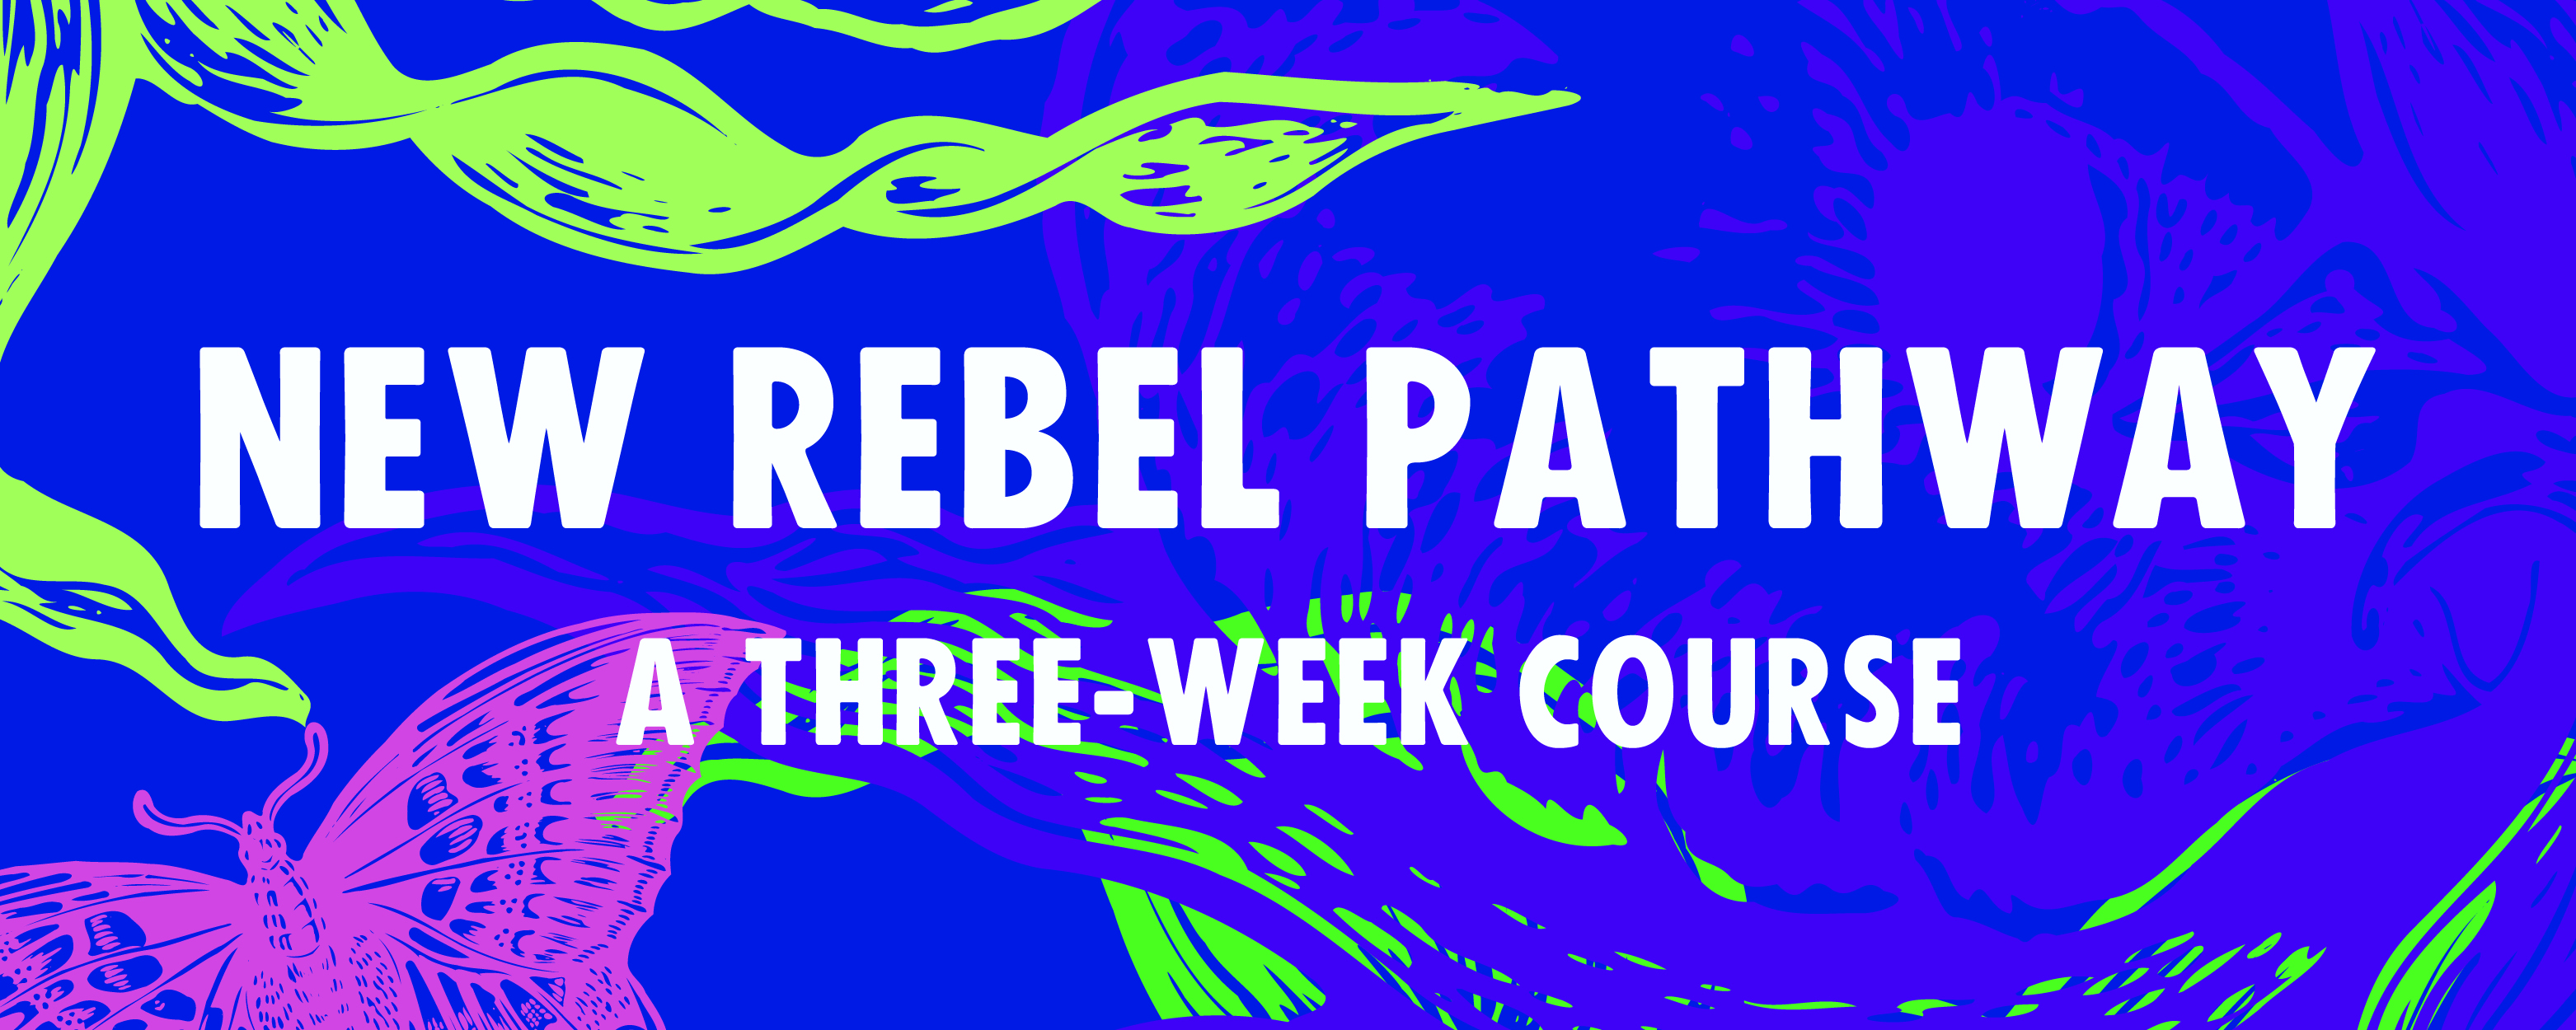 New_rebel_pathway